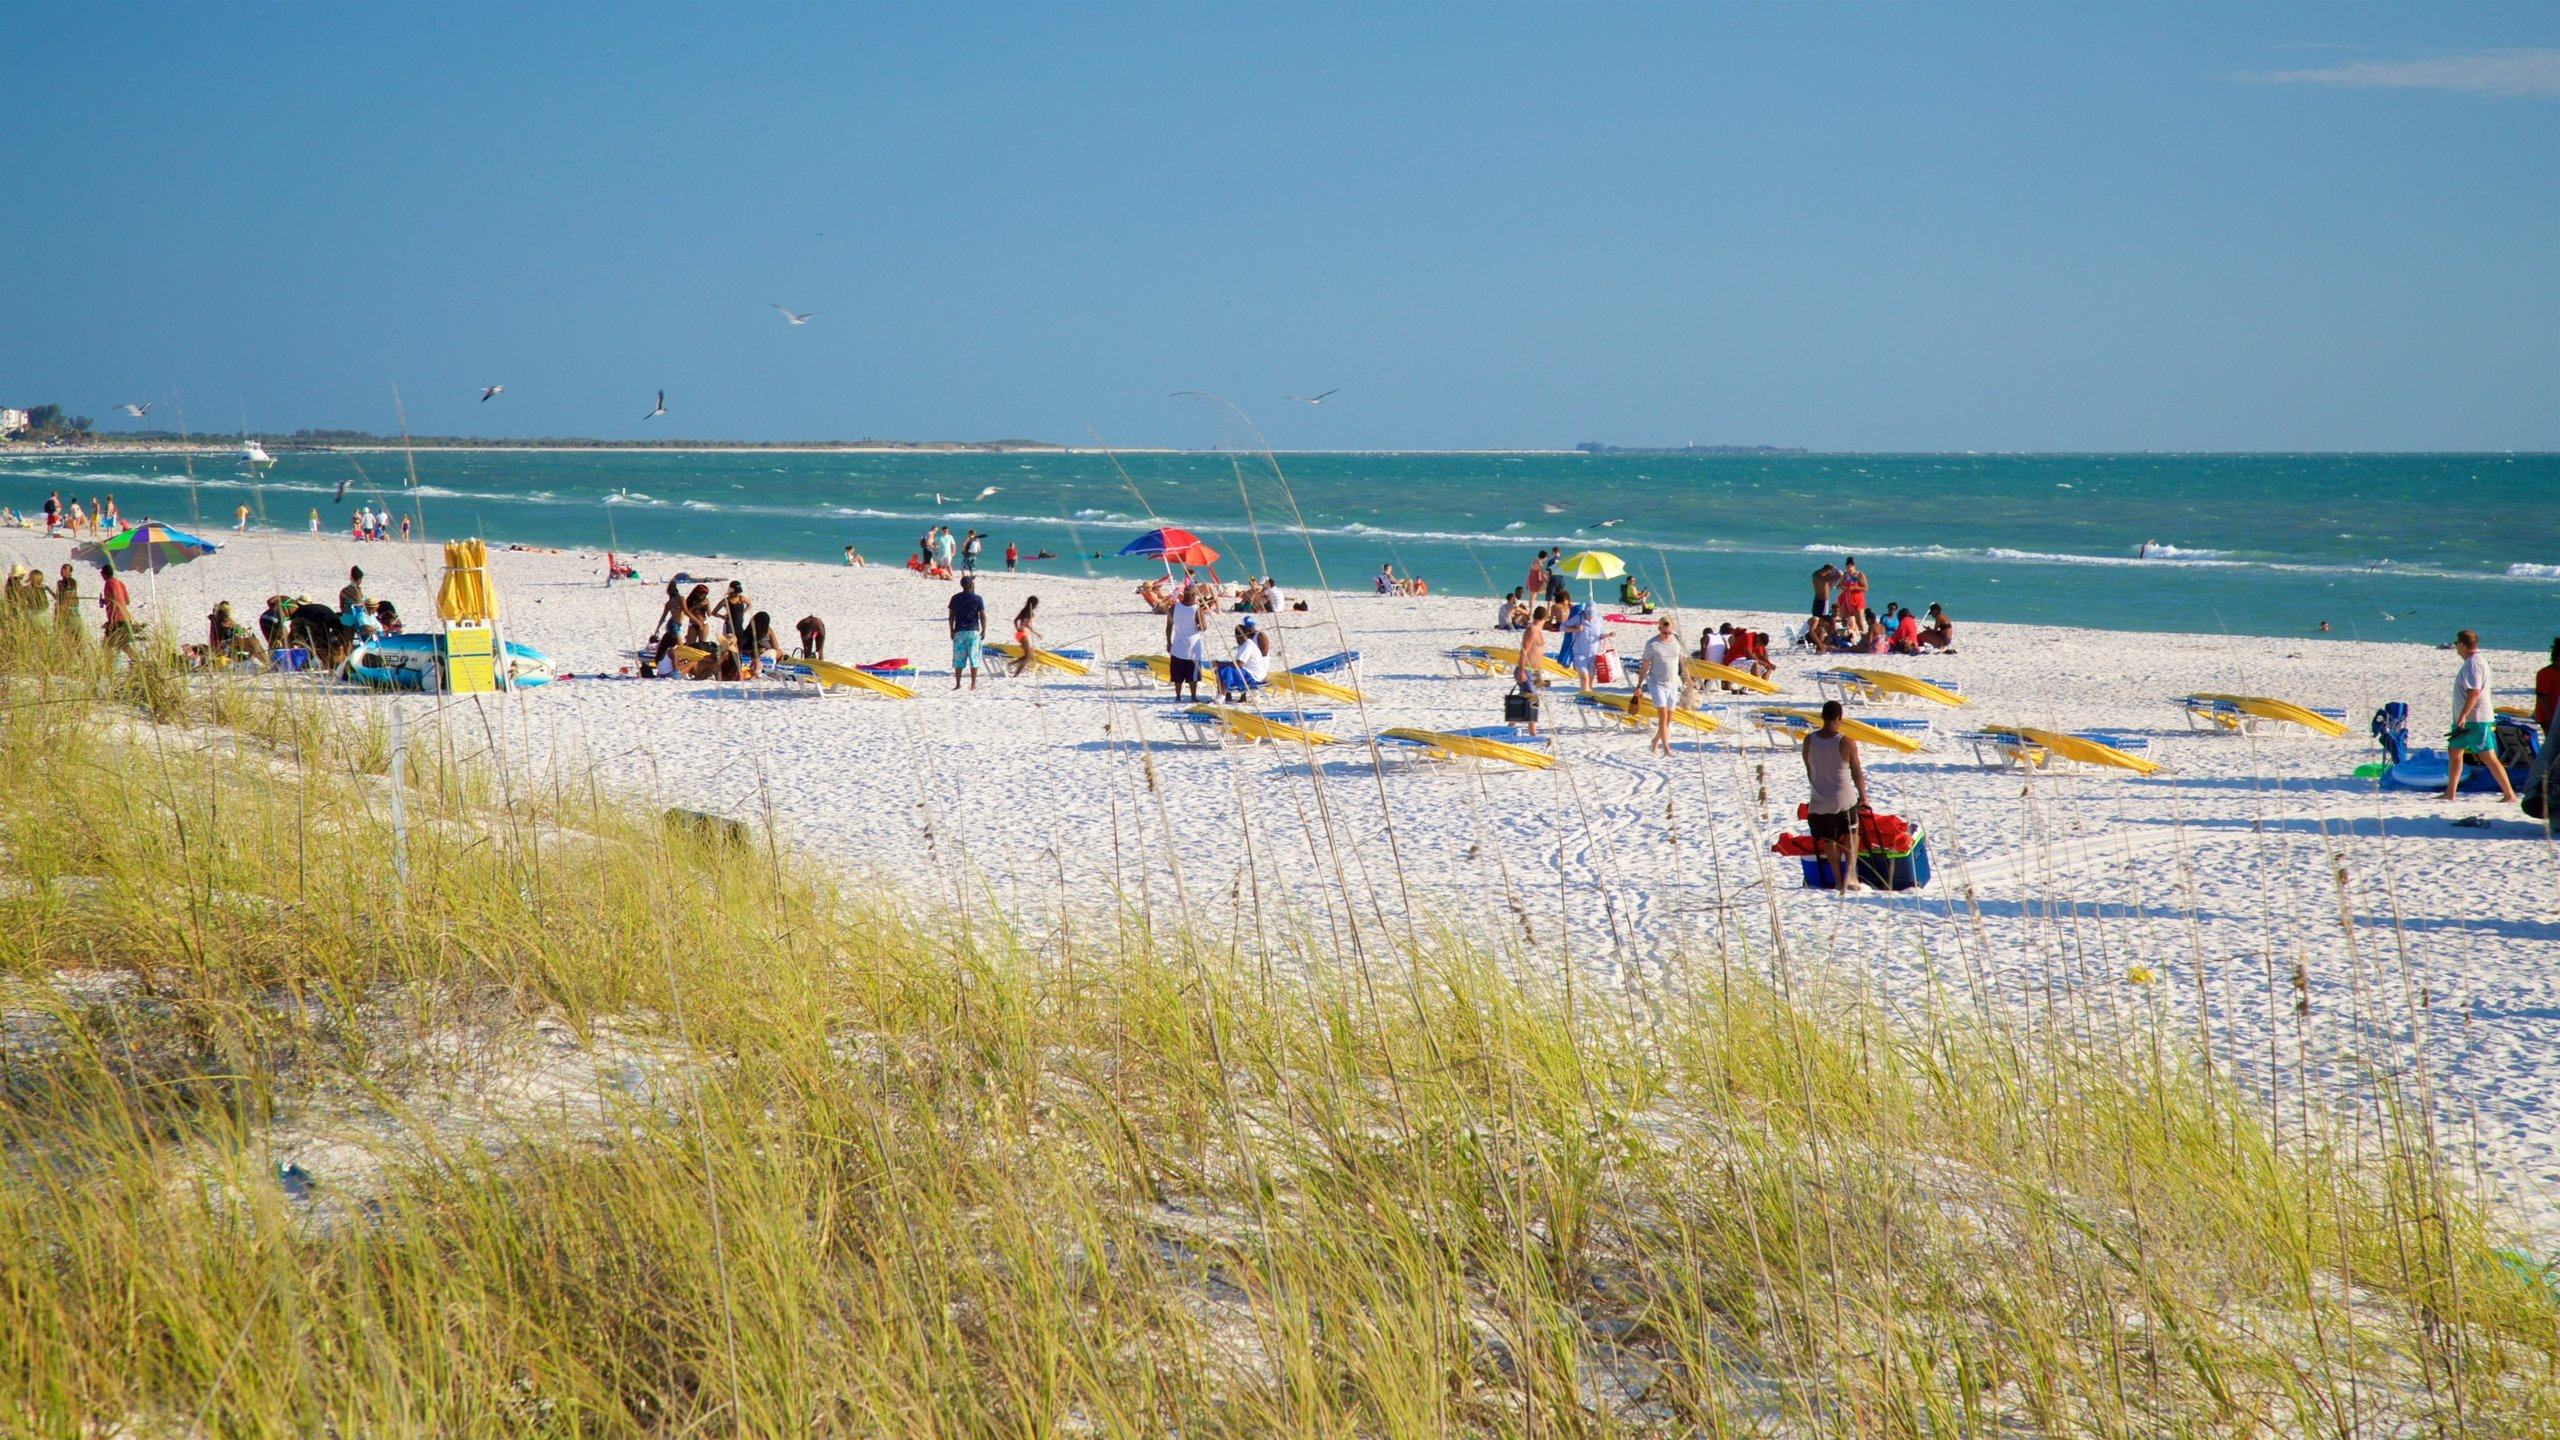 Top Hotels In St Pete Beach Fl From